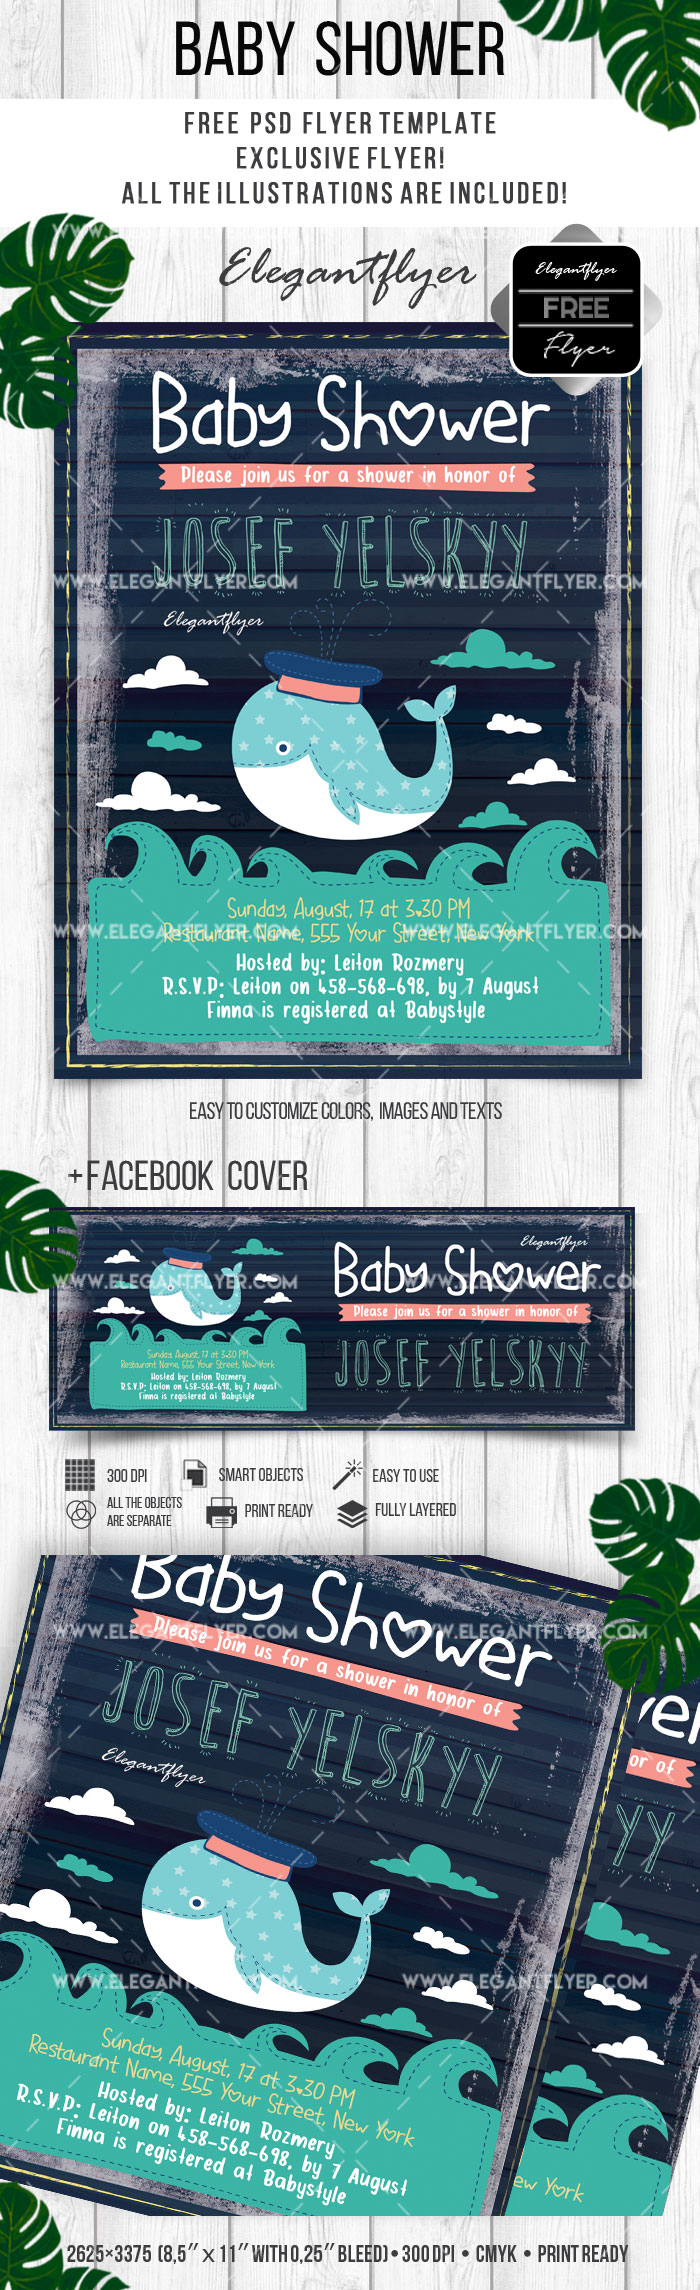 Baby Shower – Free Flyer PSD Template